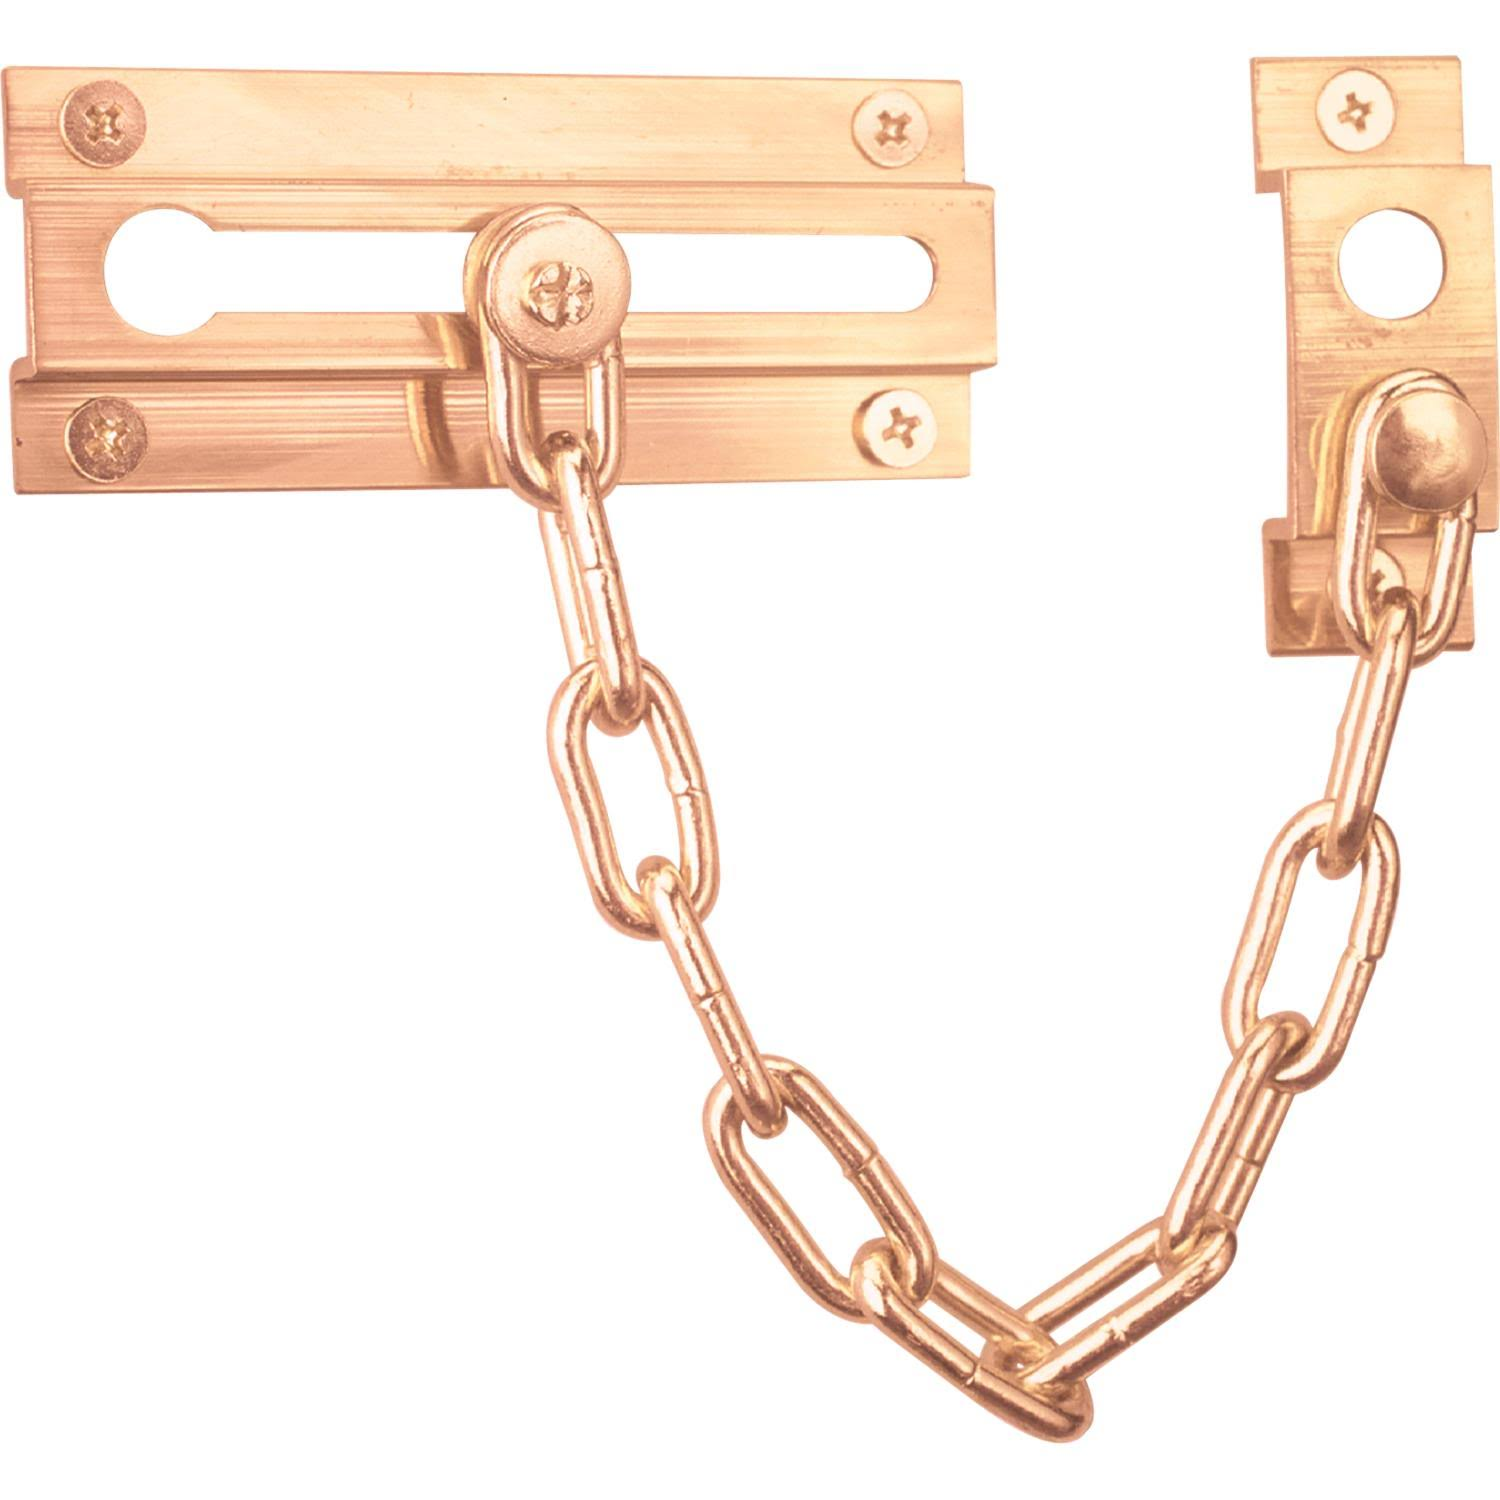 Prime-Line Products U 9907 Chain Door Guard - Steel Chain, Solid Brass